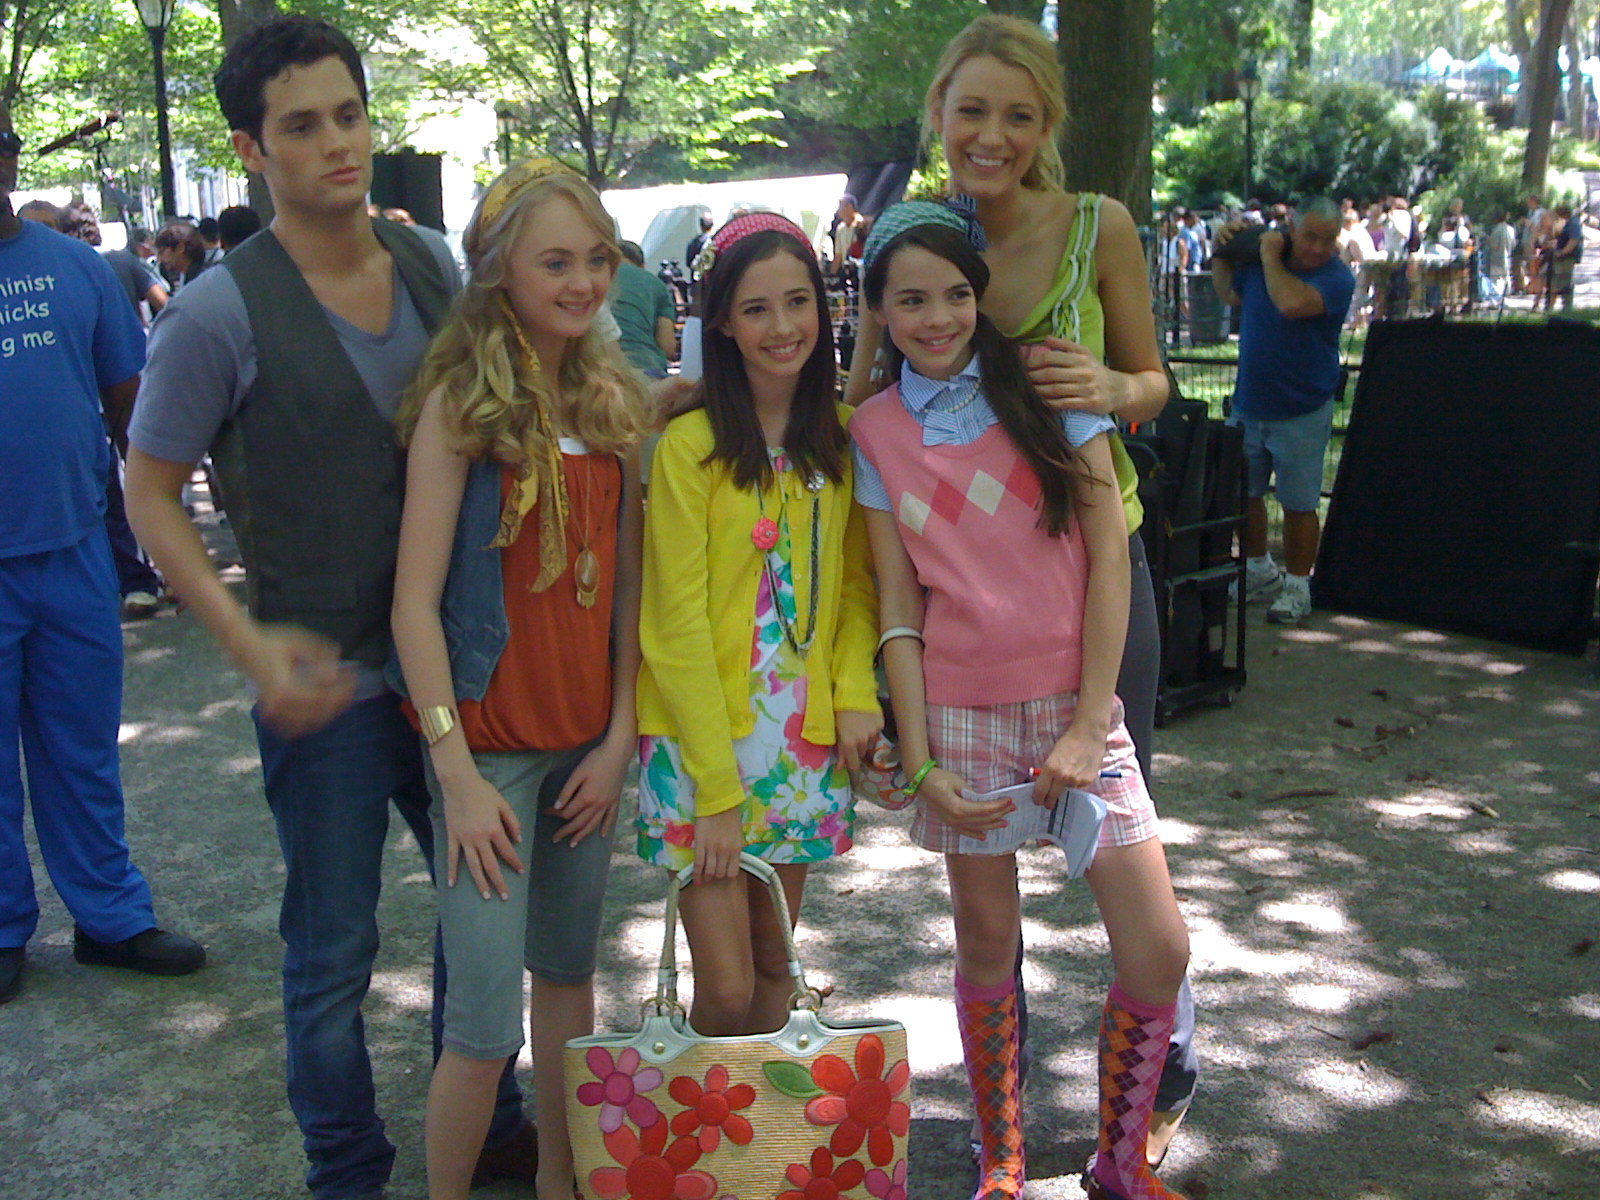 On set of Gossip Girl